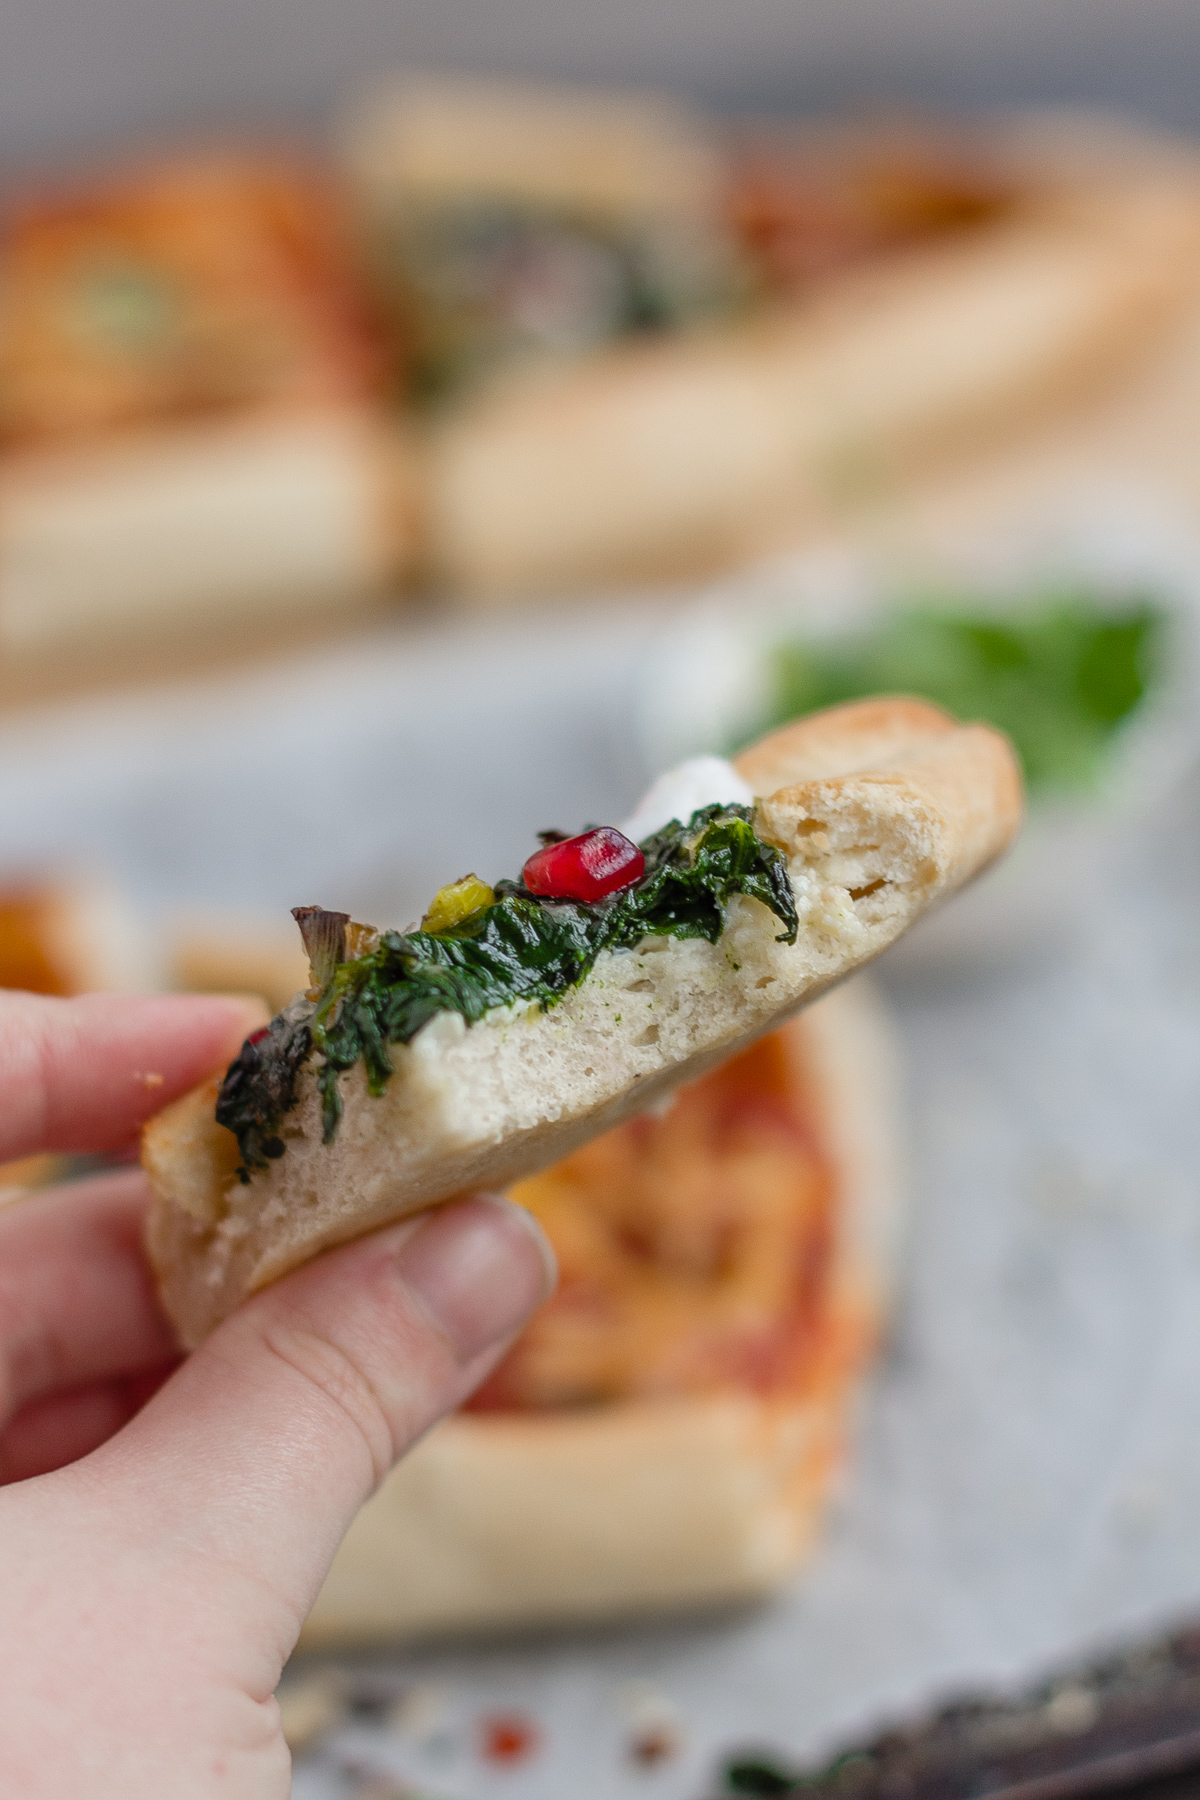 holding slice of vegan pide up